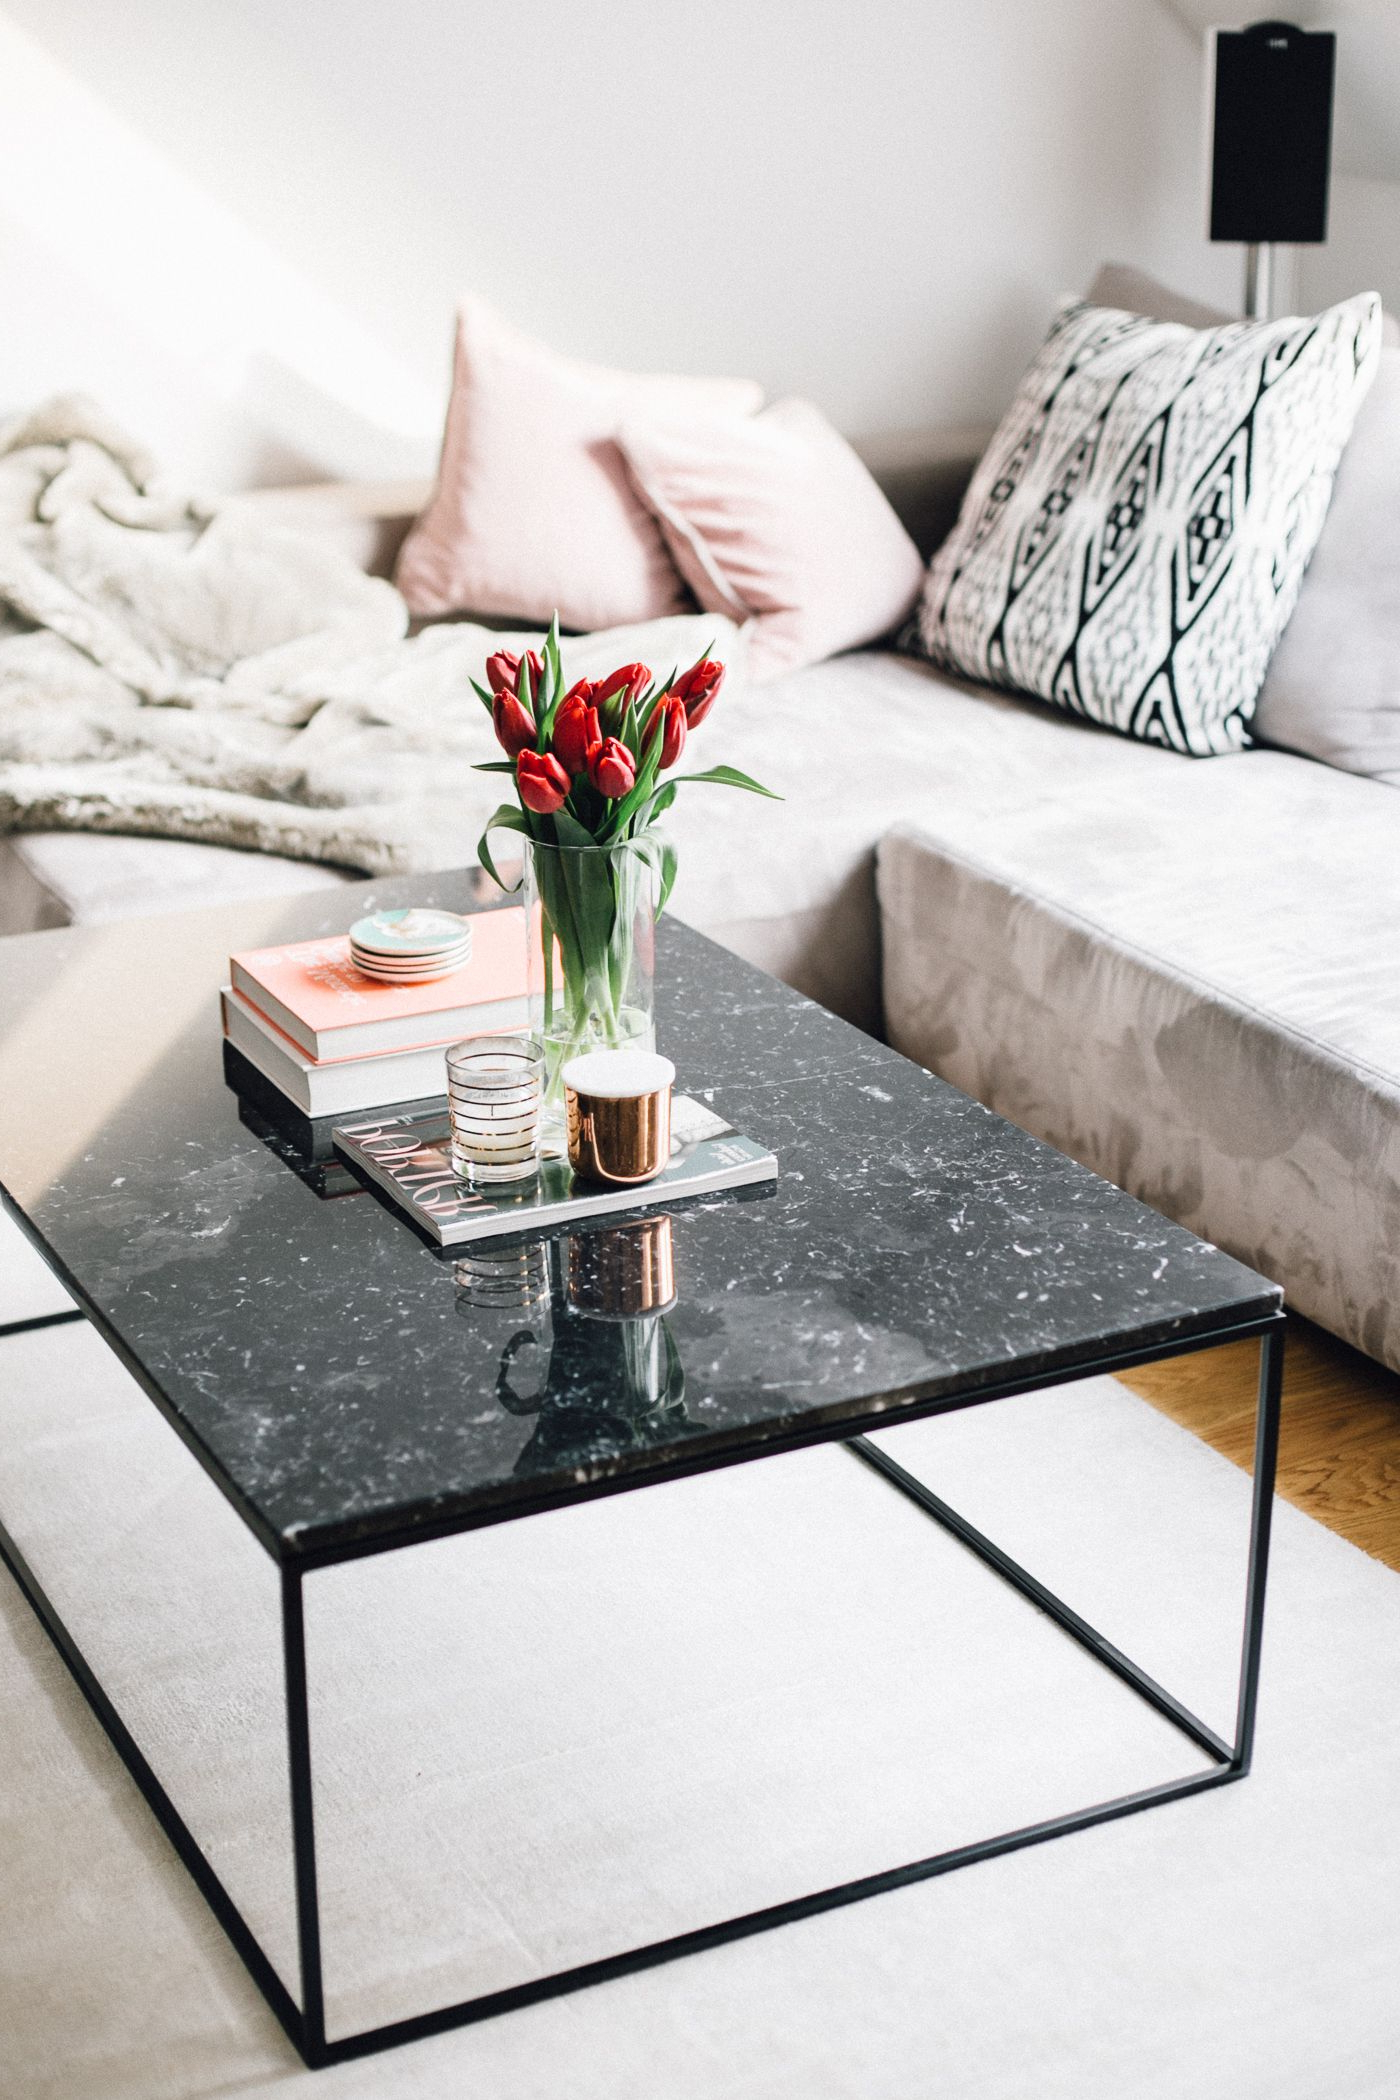 2 Tone Grey And White Marble Coffee Tables Intended For Most Recent Marble Coffee Tables, Interior Inspiration – The Daily Dose (Gallery 4 of 20)